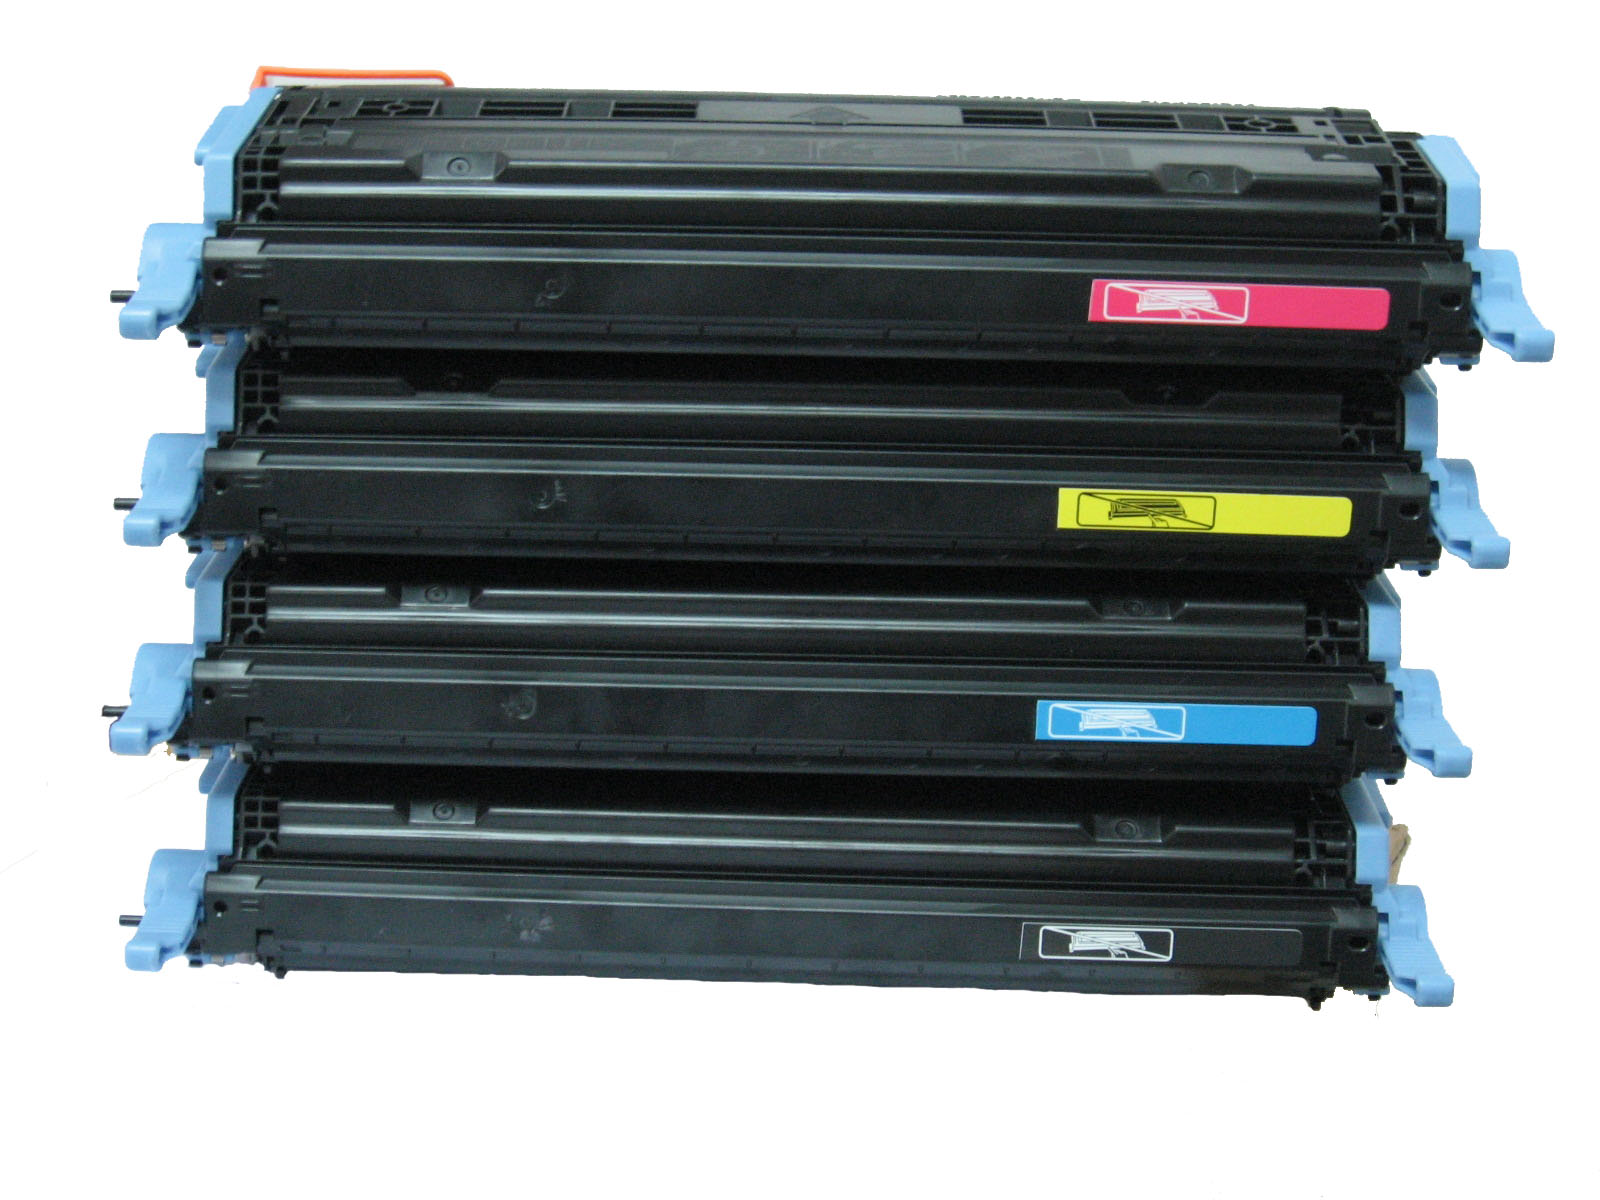 Tonner For Printer The Remanufactured Printer Toner Process